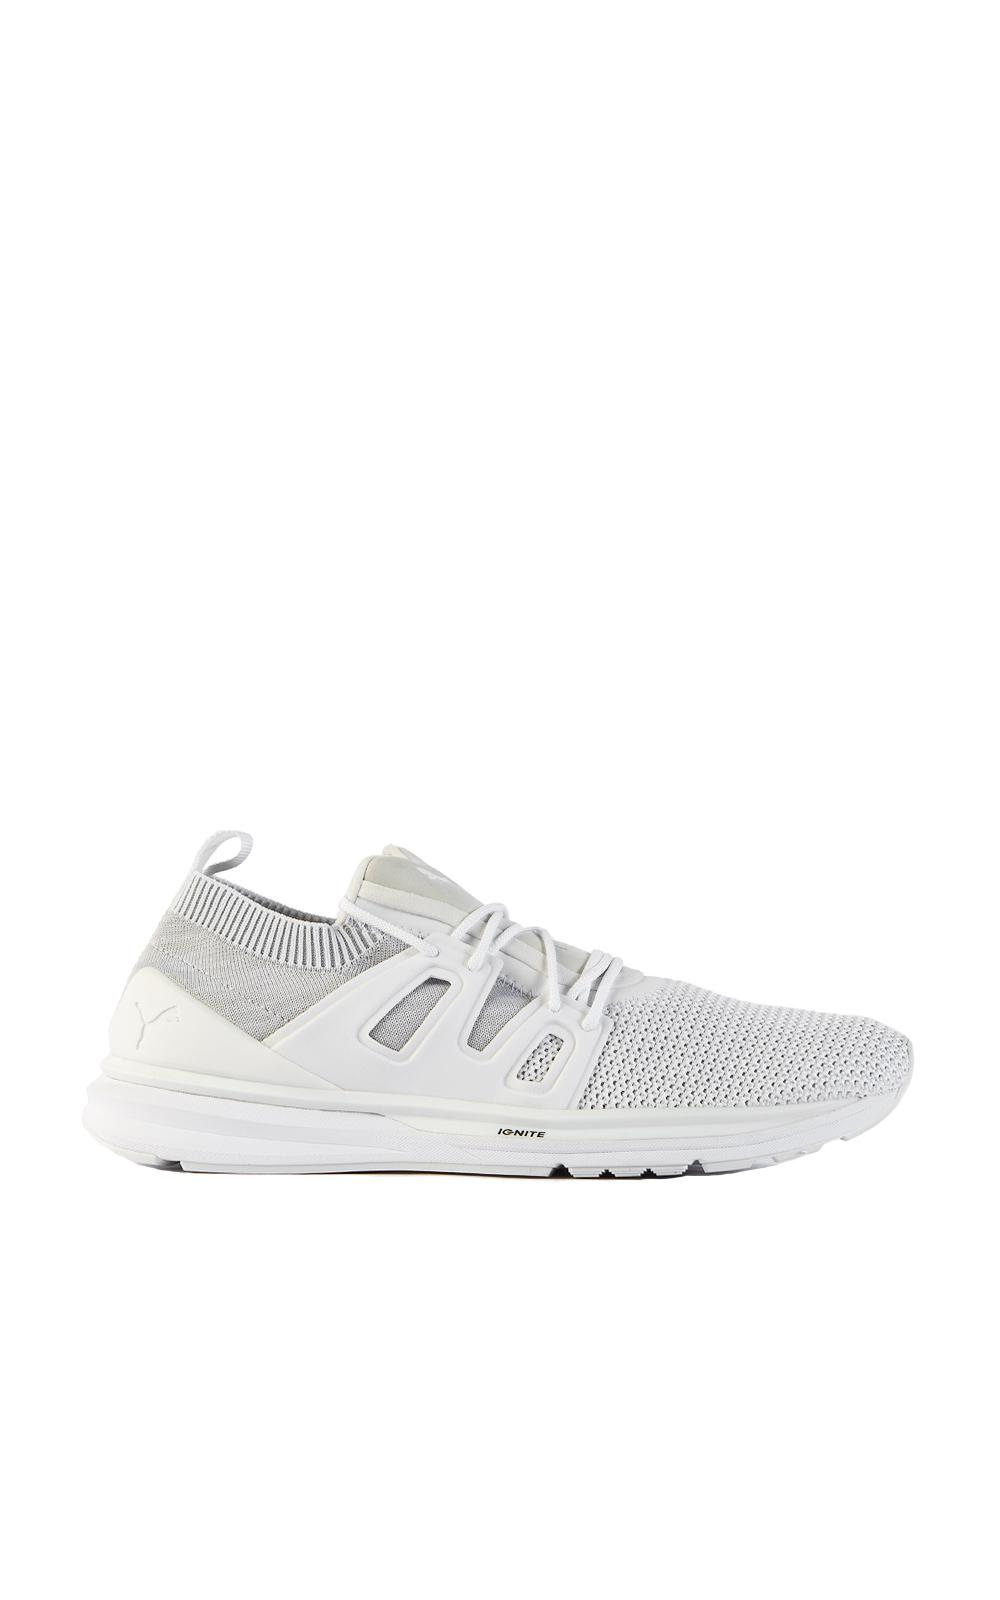 Puma B.o.g Limitless Lo Evoknit S White in White - Lyst 8976d2d43